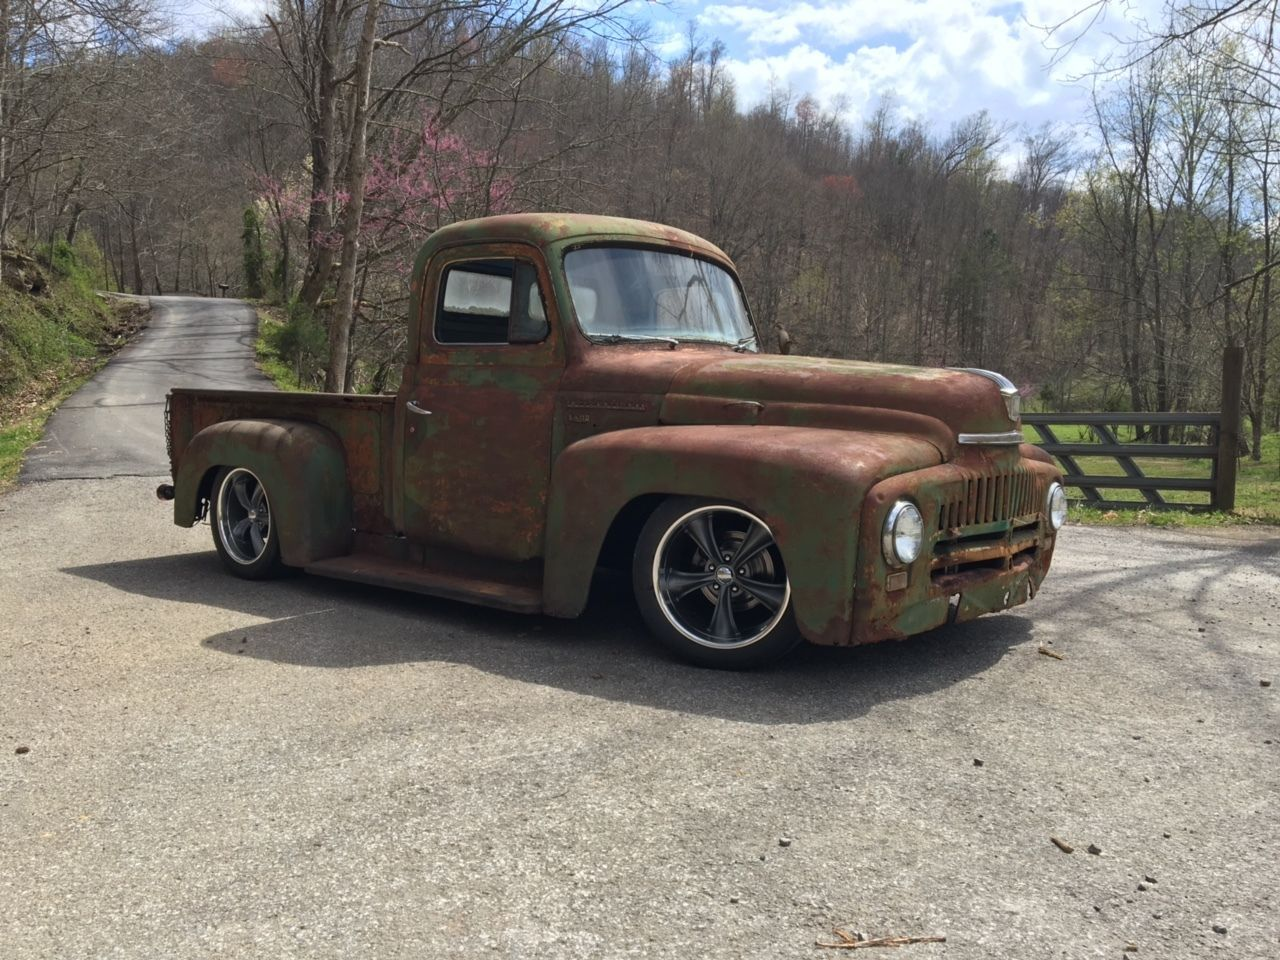 Chevrolet other pickups base 1953 international rat rod truck dodge dakota chassis chevrolet 3100 no